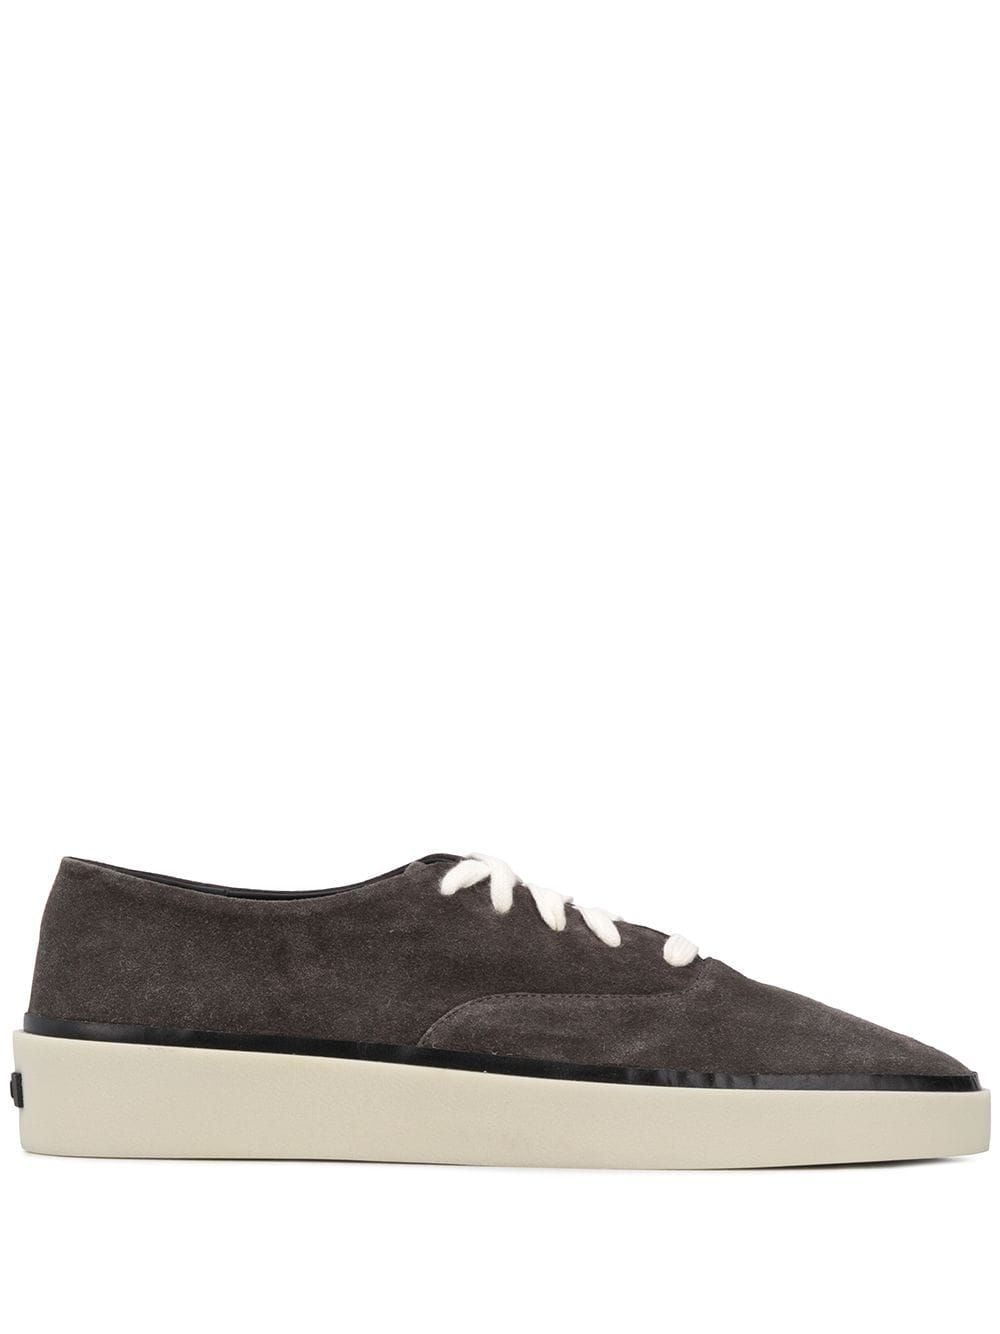 Fear Of God FEAR OF GOD MEN'S BROWN LEATHER SNEAKERS